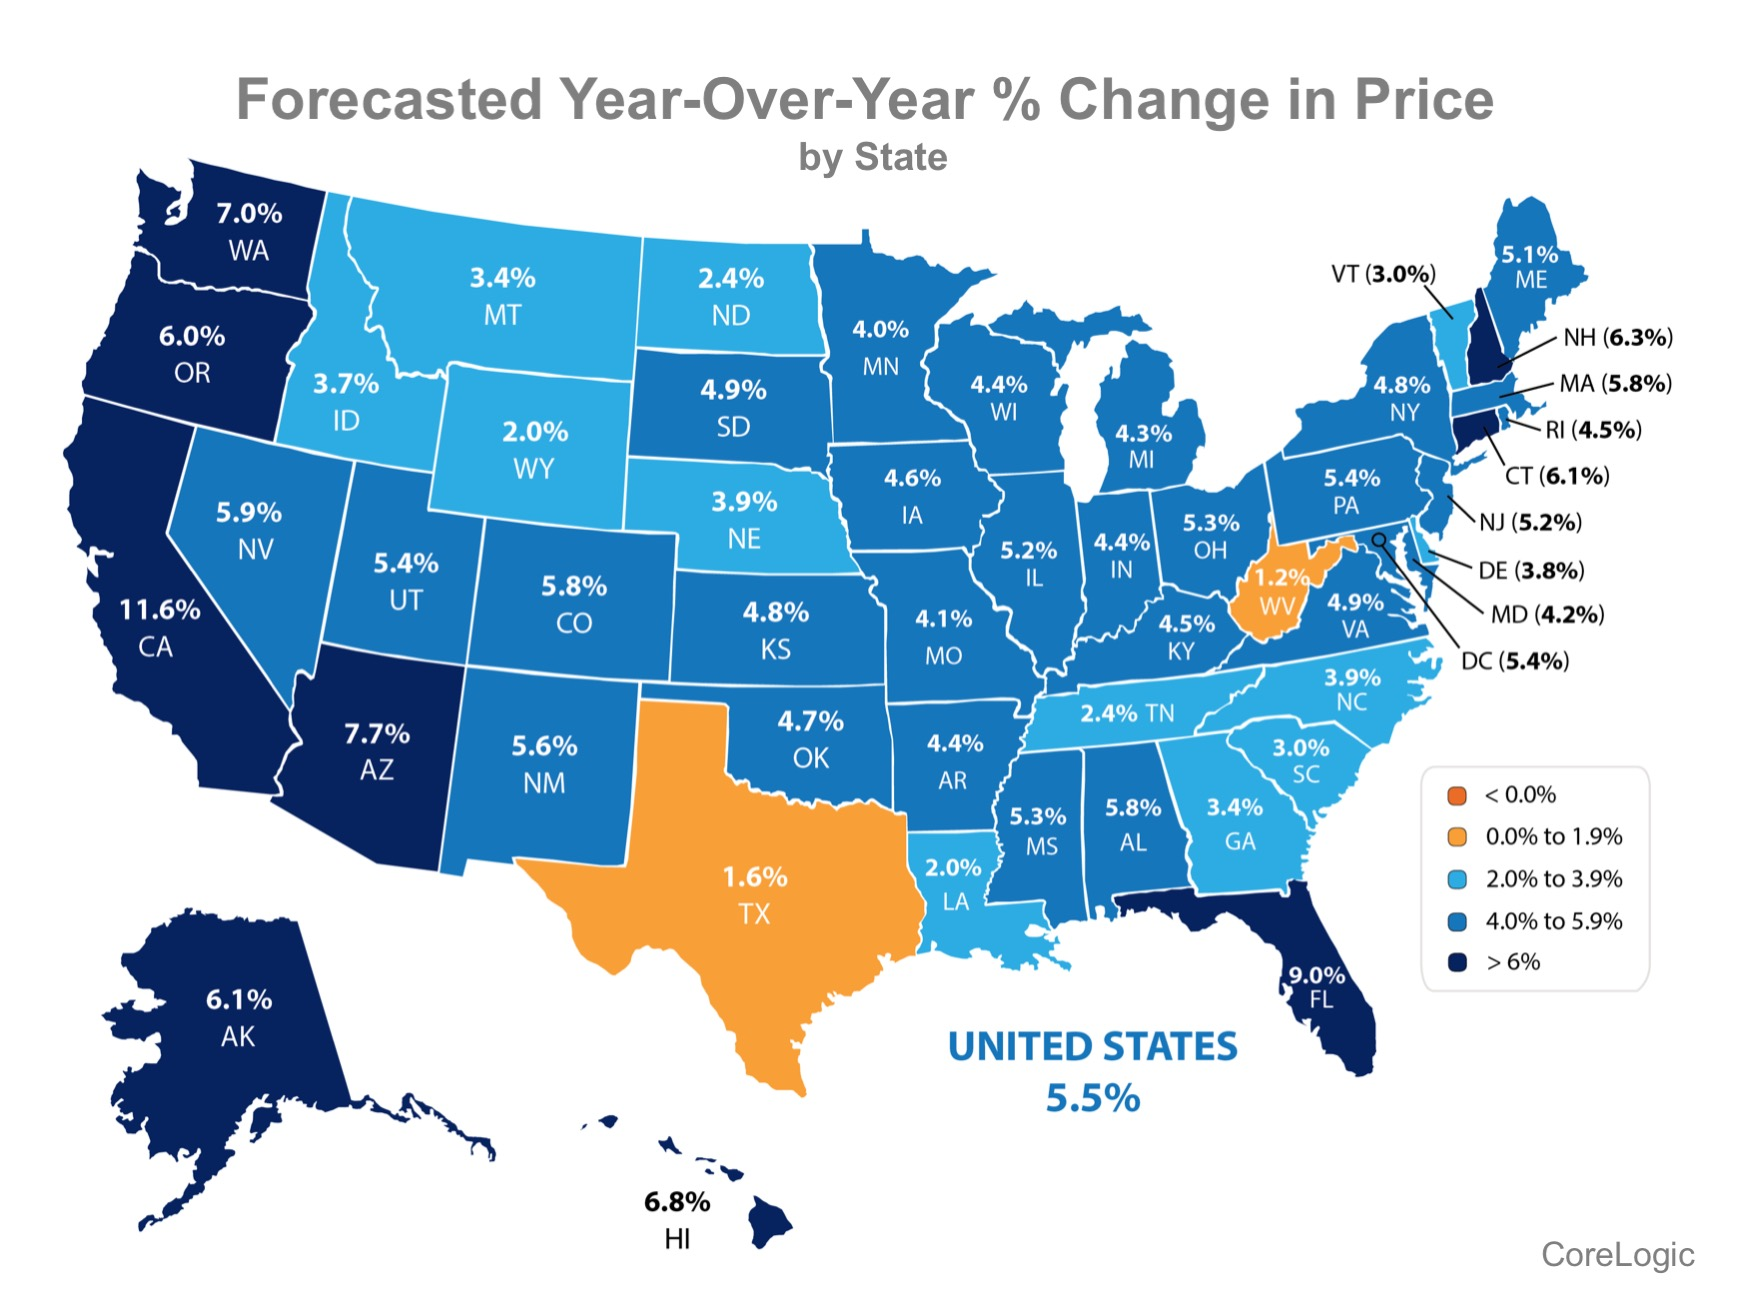 Map of U.S. forecasted year over year % change in price